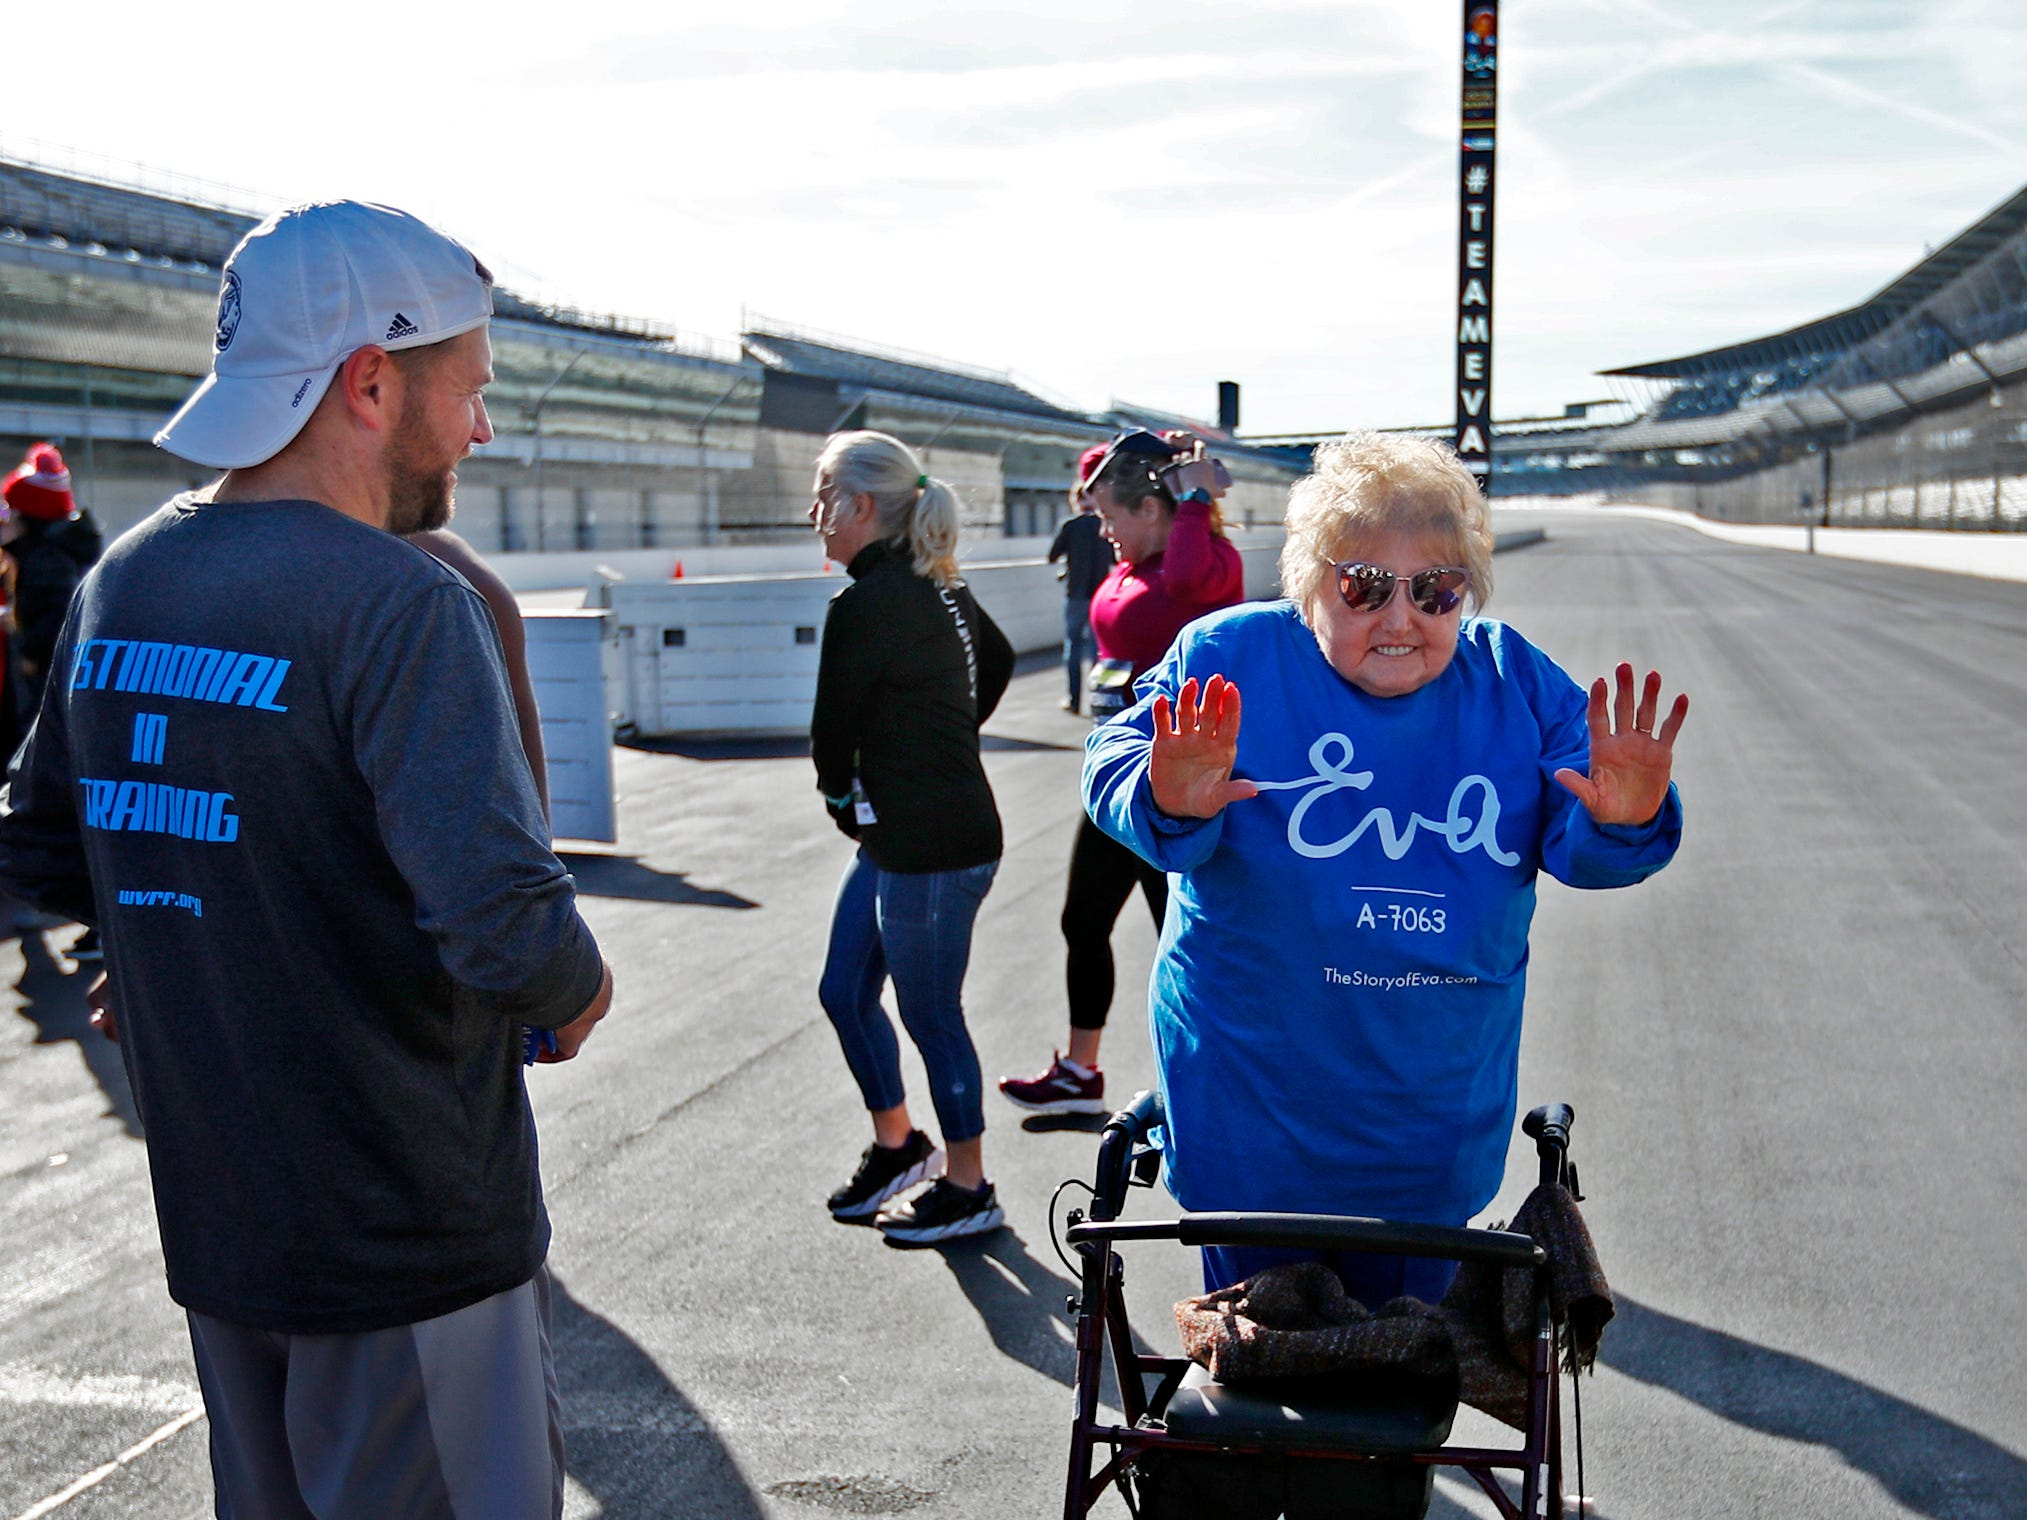 Holocaust survivor Eva Kor, right, joins others and enjoys the spirit of the day, at the Indianapolis Motor Speedway Yard of Bricks, Wednesday, Oct. 24, 2018, midway during the pace-setting run for the 2019 OneAmerica 500 Festival Mini-Marathon.  The 500 Festival will donate $1 to the CANDLES Holocaust Museum in Terre Haute for every mini-marathon participant who finishes the 2019 race in a better time than Team Eva.  Kor ran the very last of the relay race.